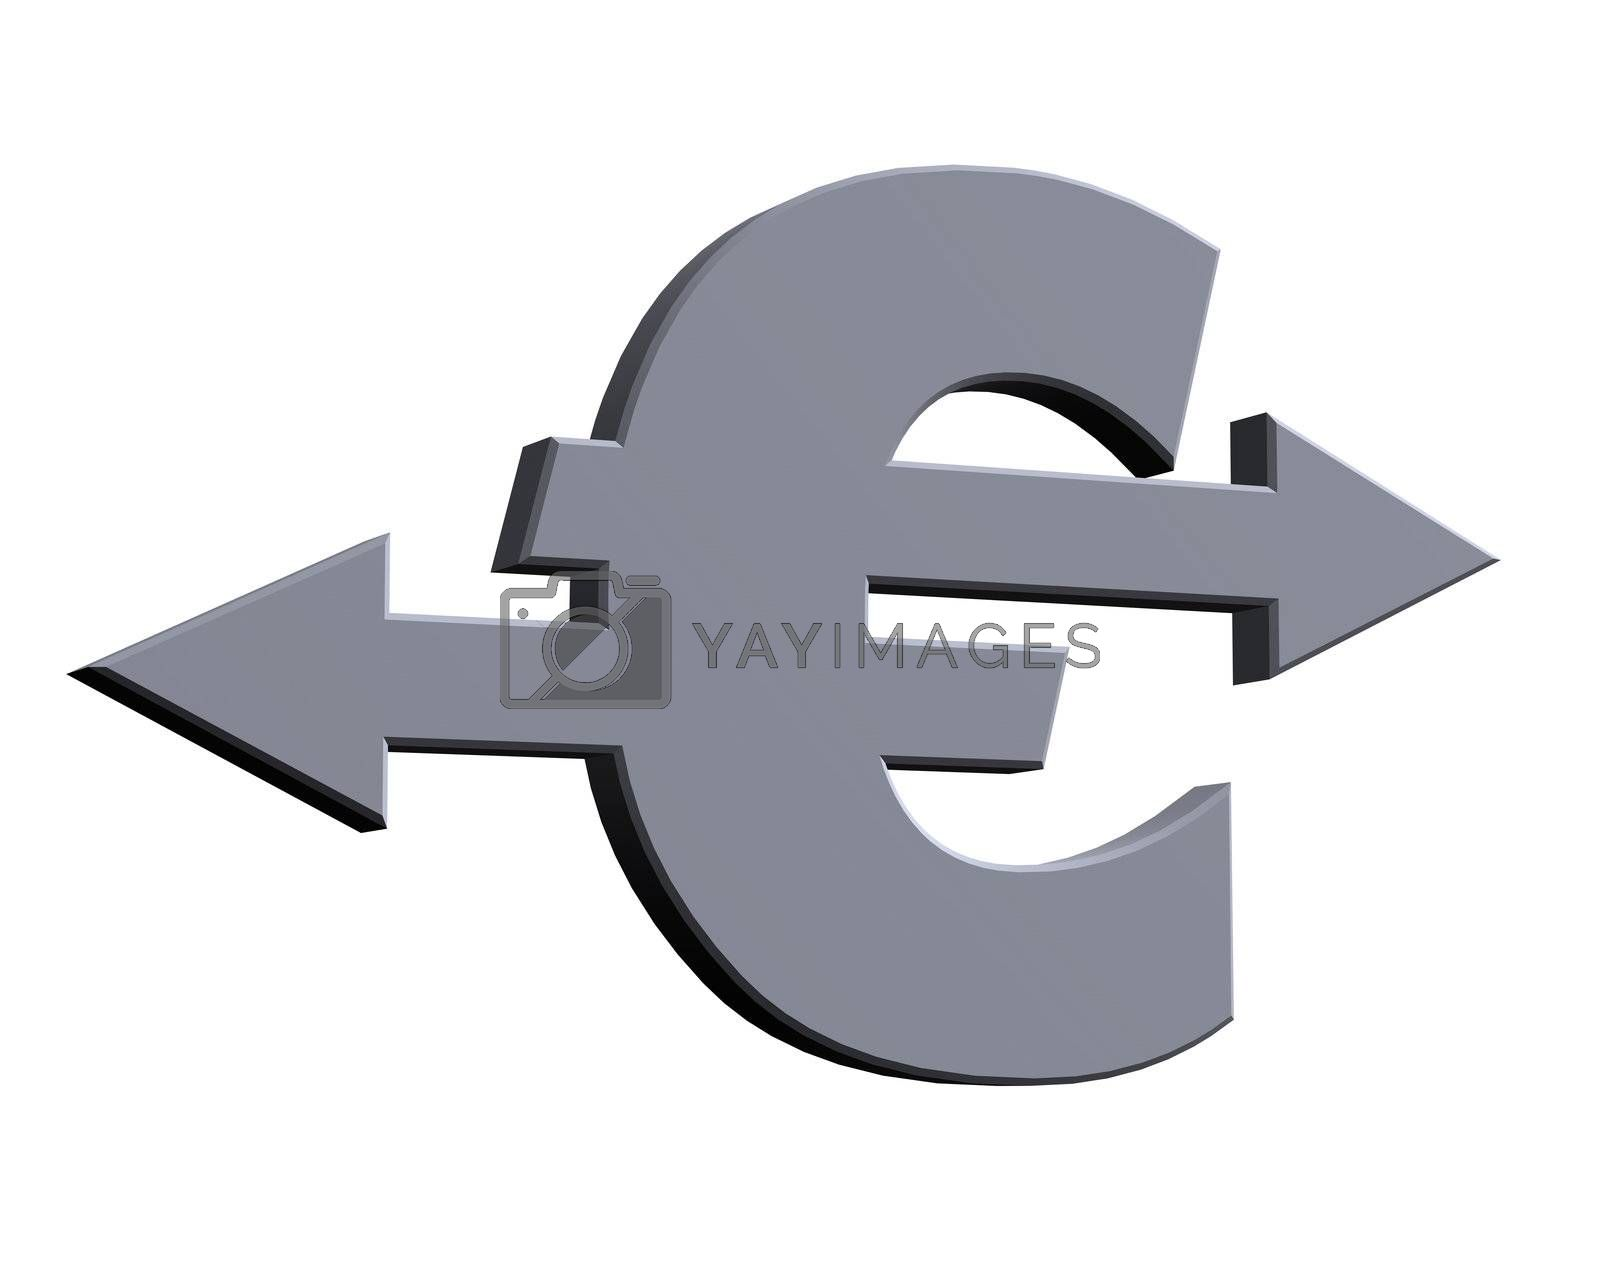 euro sign with pointers - 3d illustration